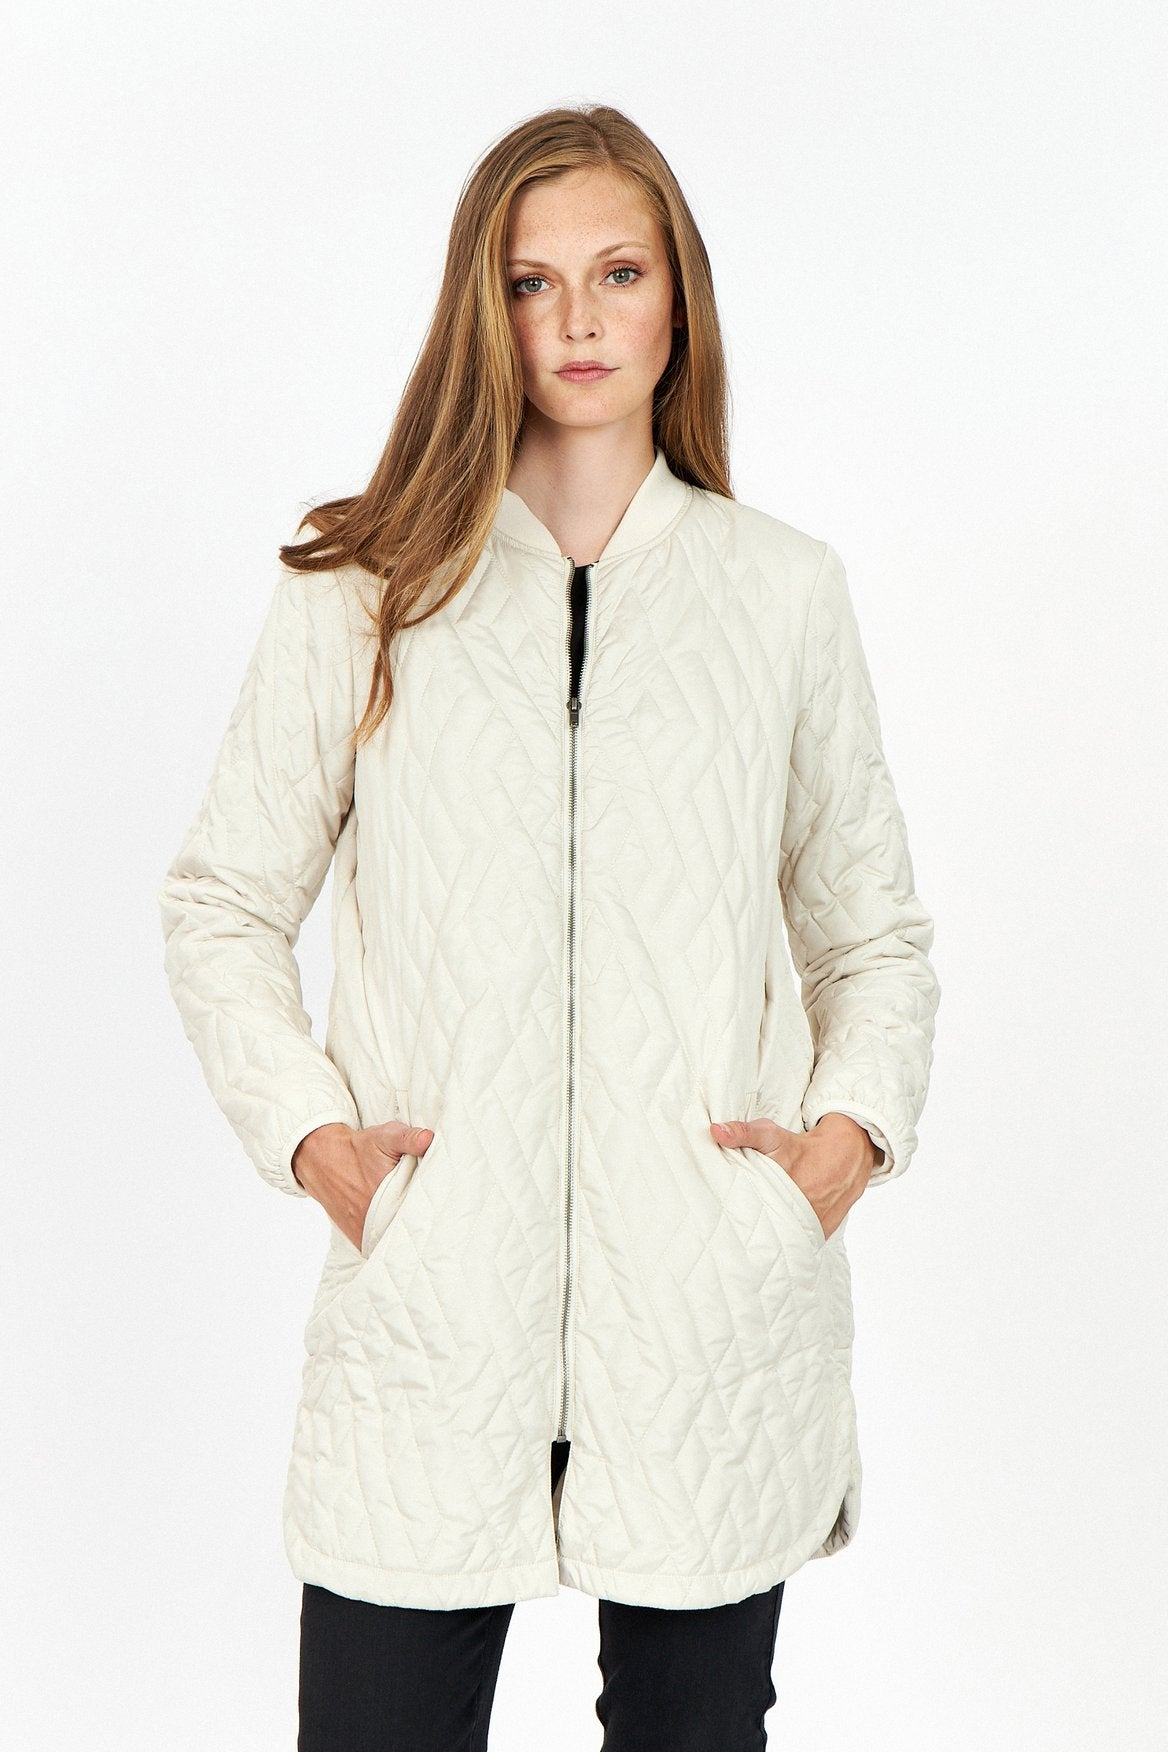 Soya-Concept-ivory-quilted-knee-length-jacket